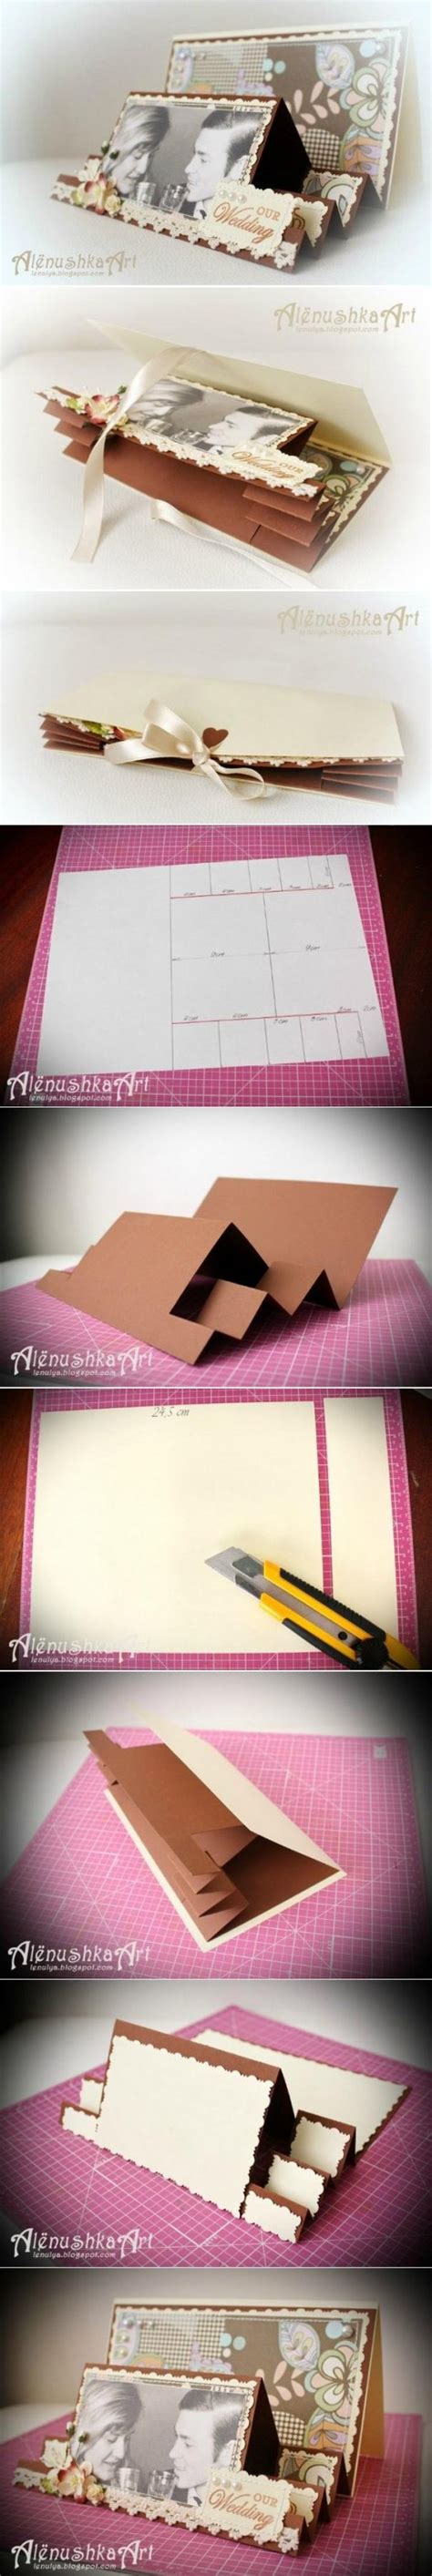 how to make a 3d card how to make 3d wedding card step by step diy tutorial